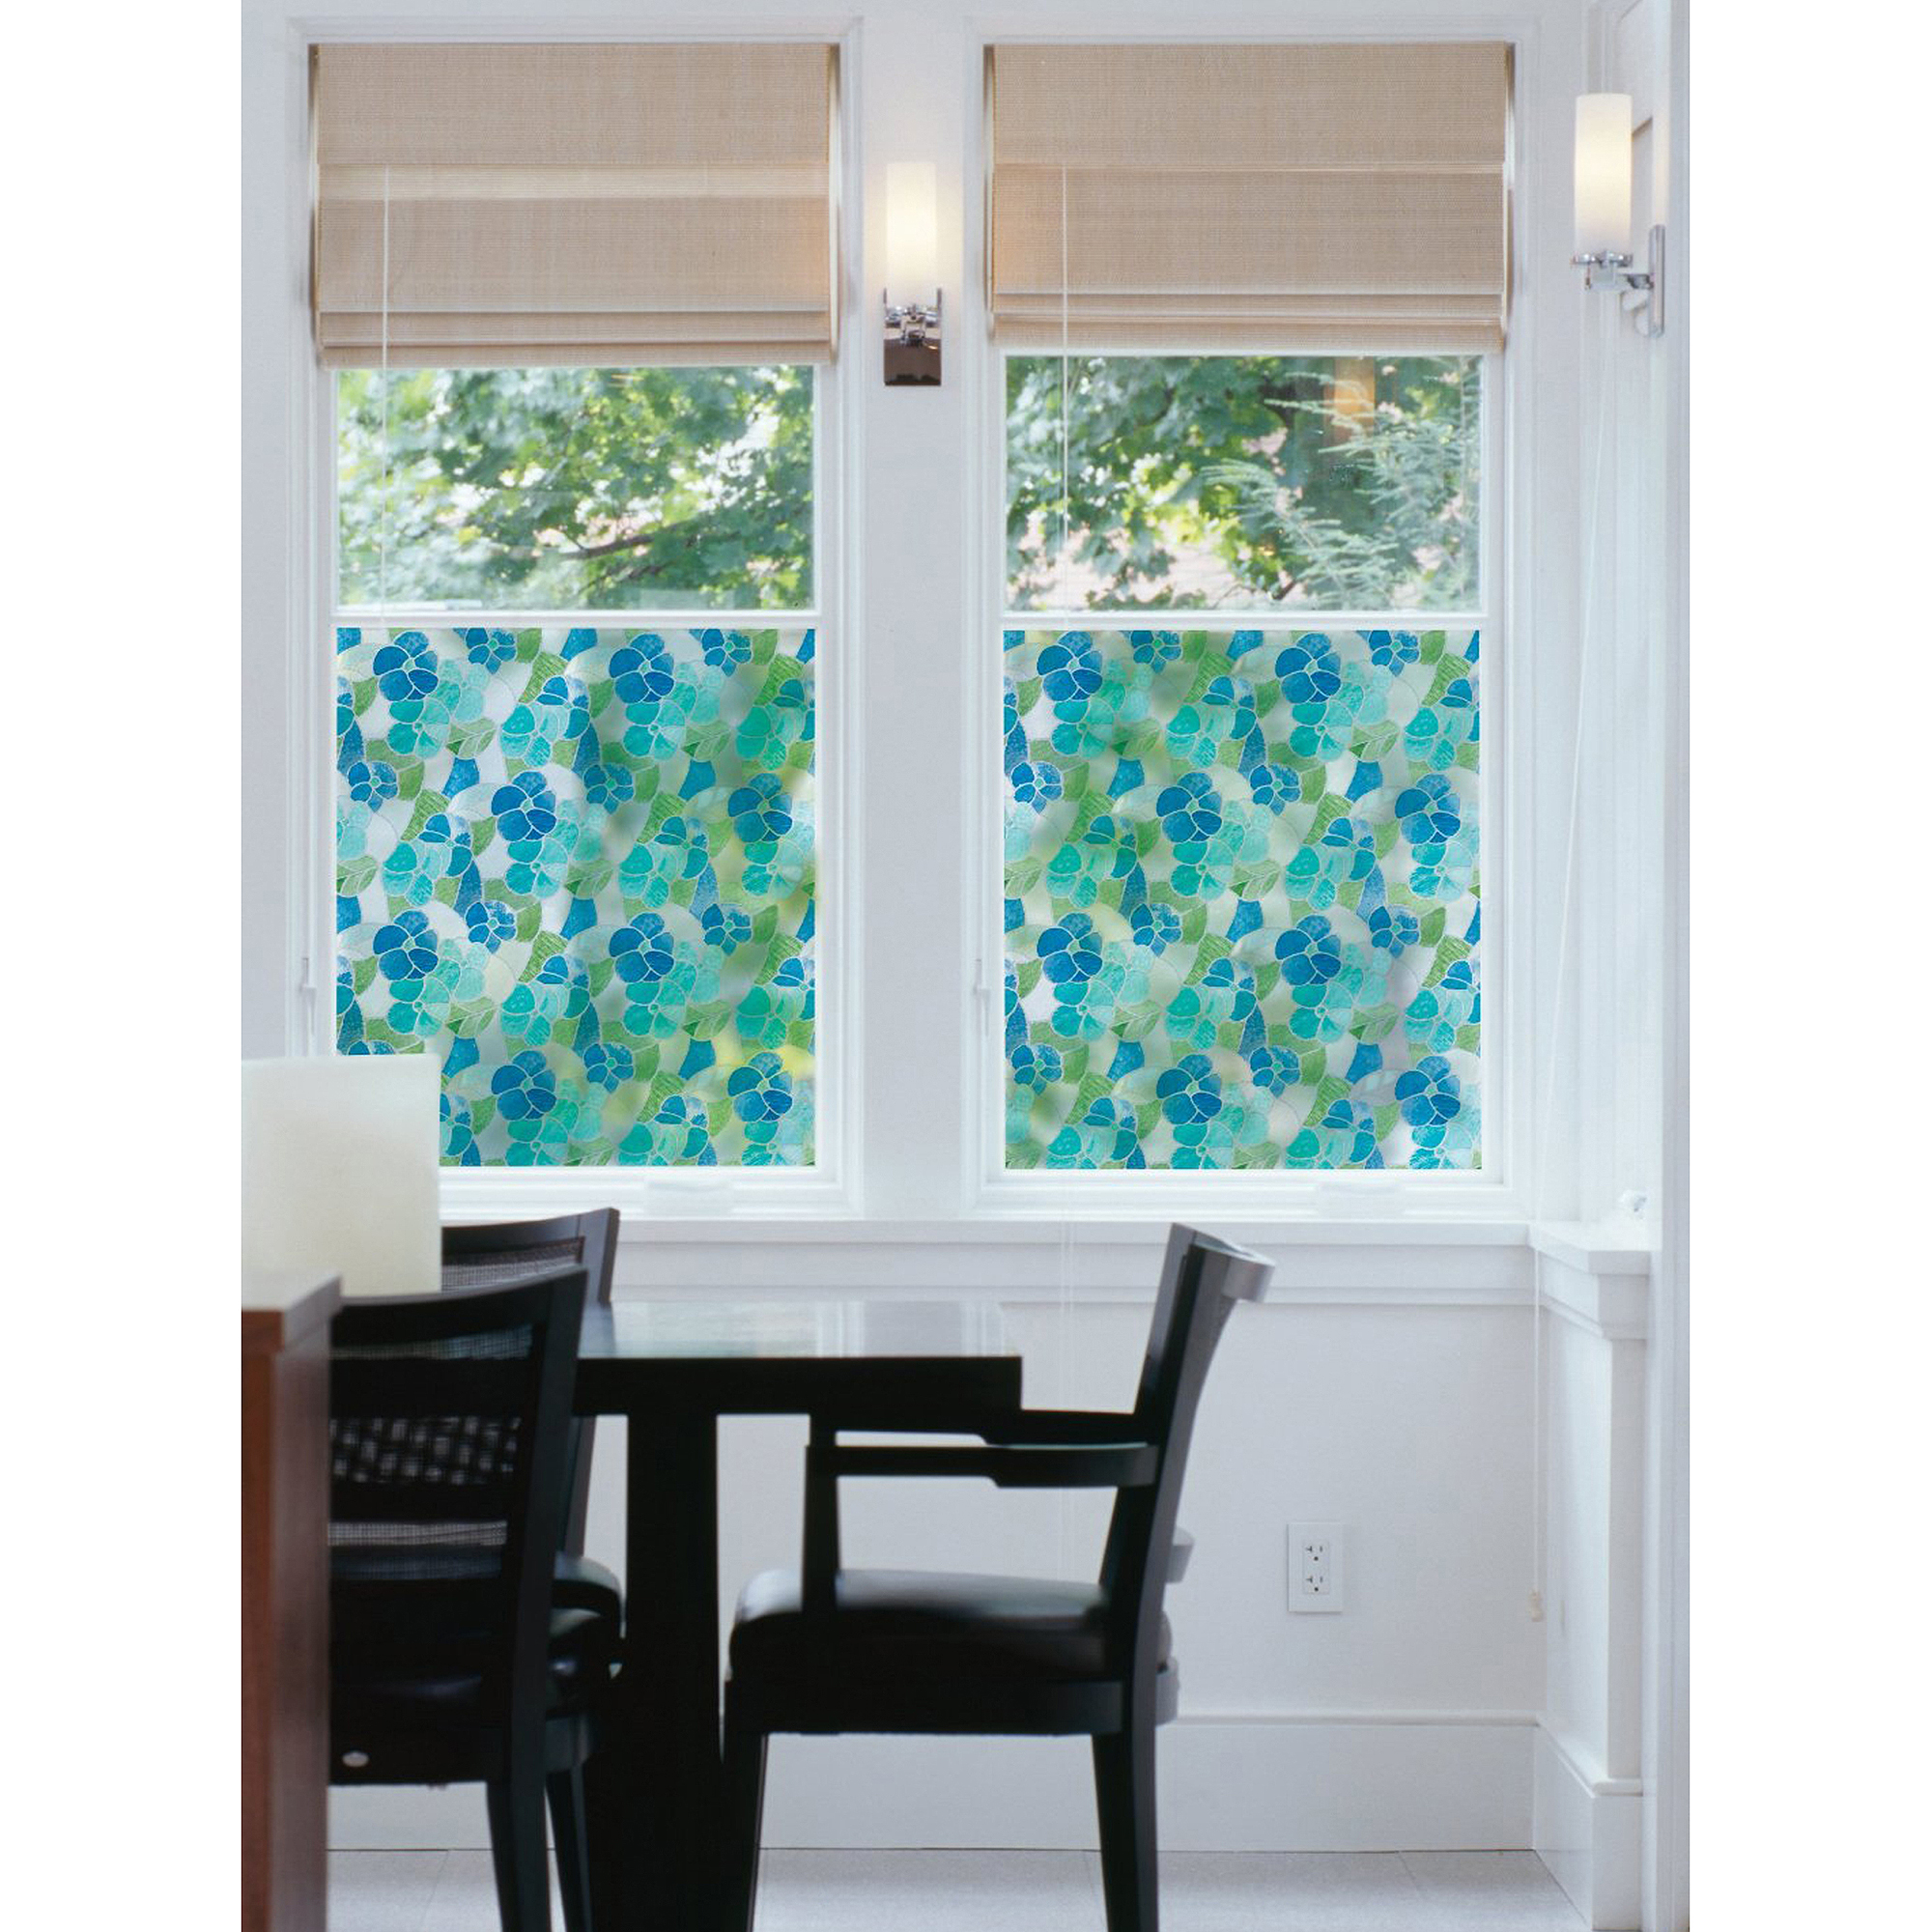 Brewster Blue and Green Stained Glass Peel and Stick Window Film